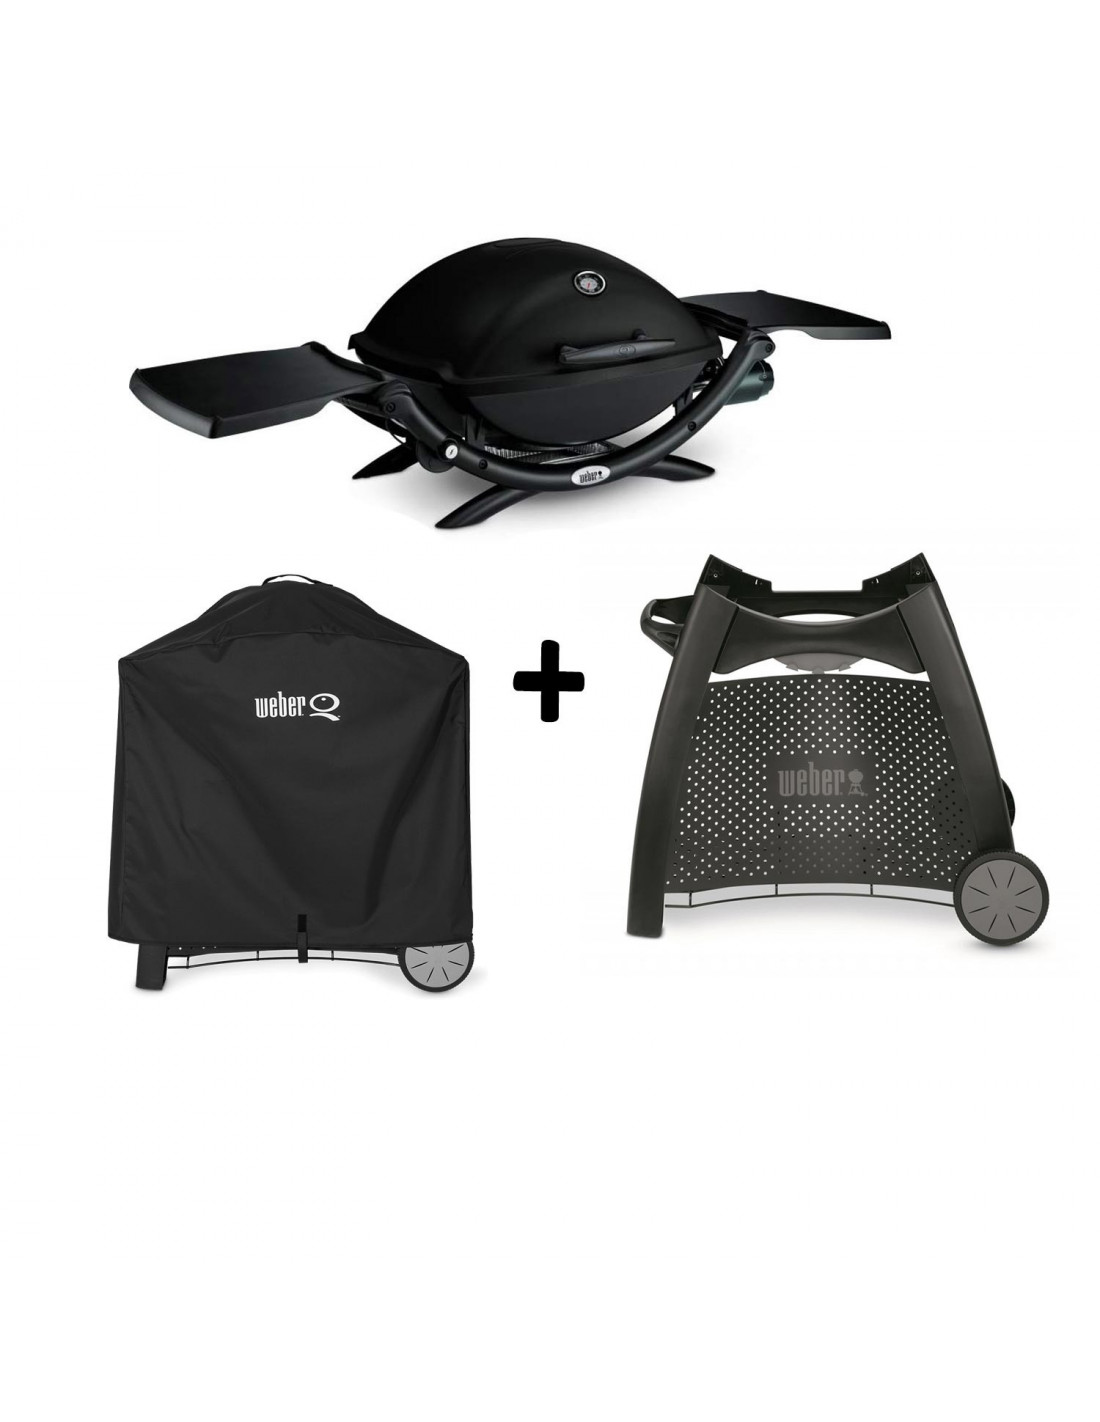 pack barbecue q2200 chariot luxe housse weber